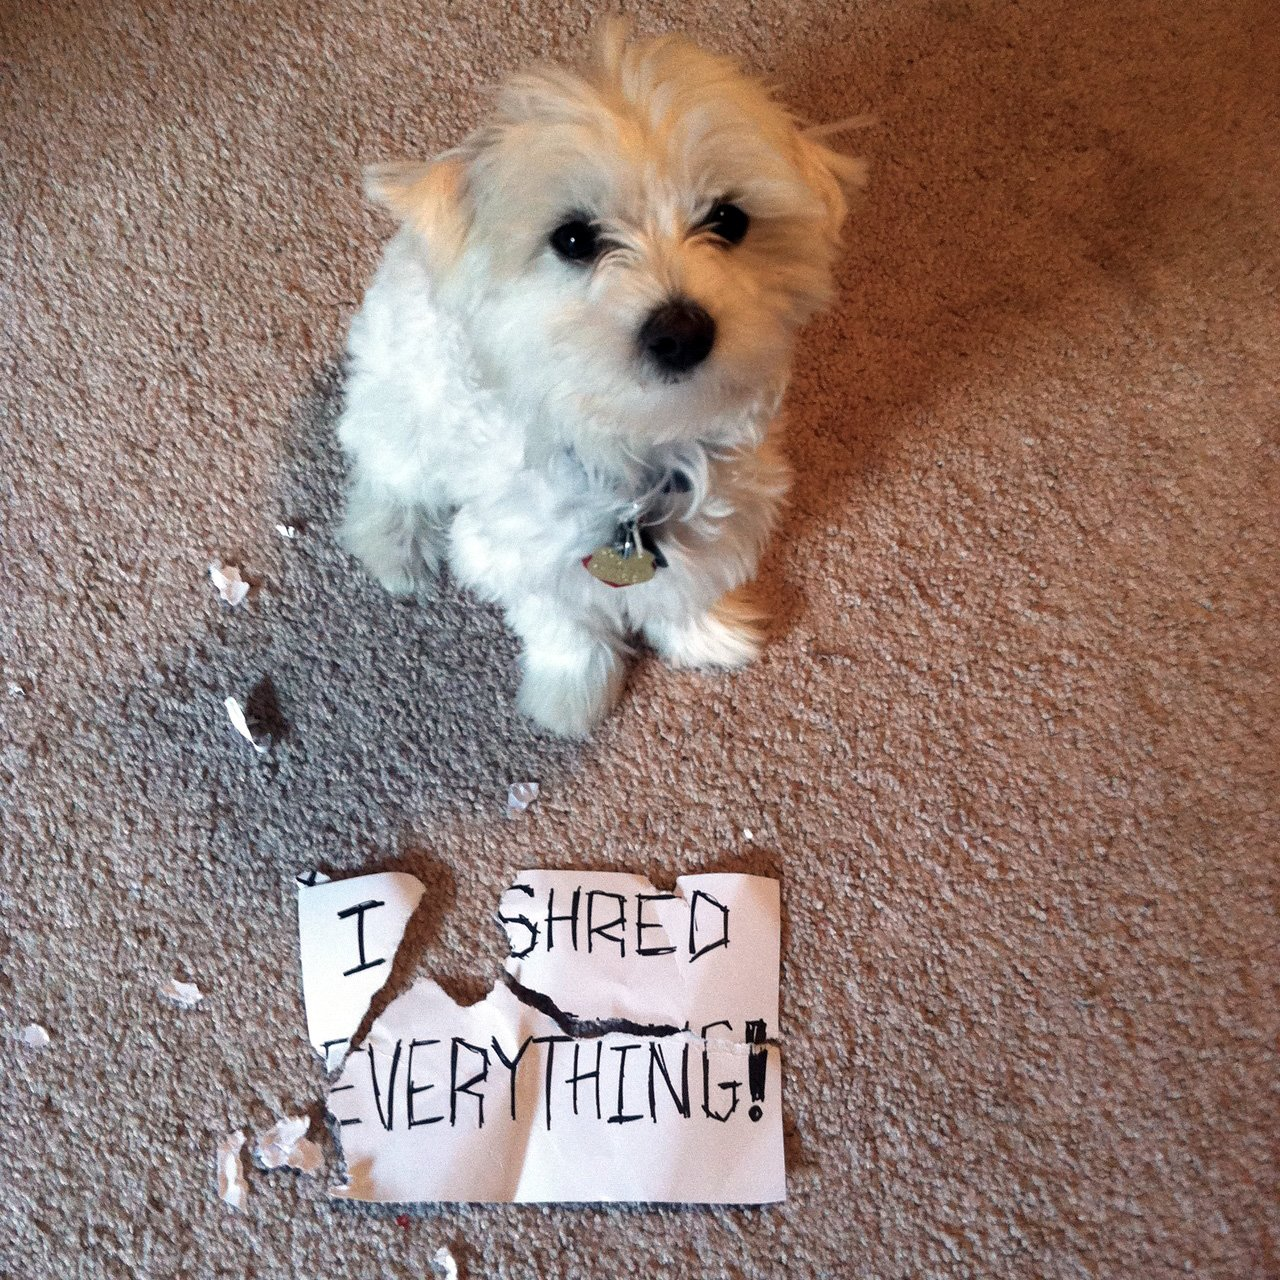 dogshaming shredding